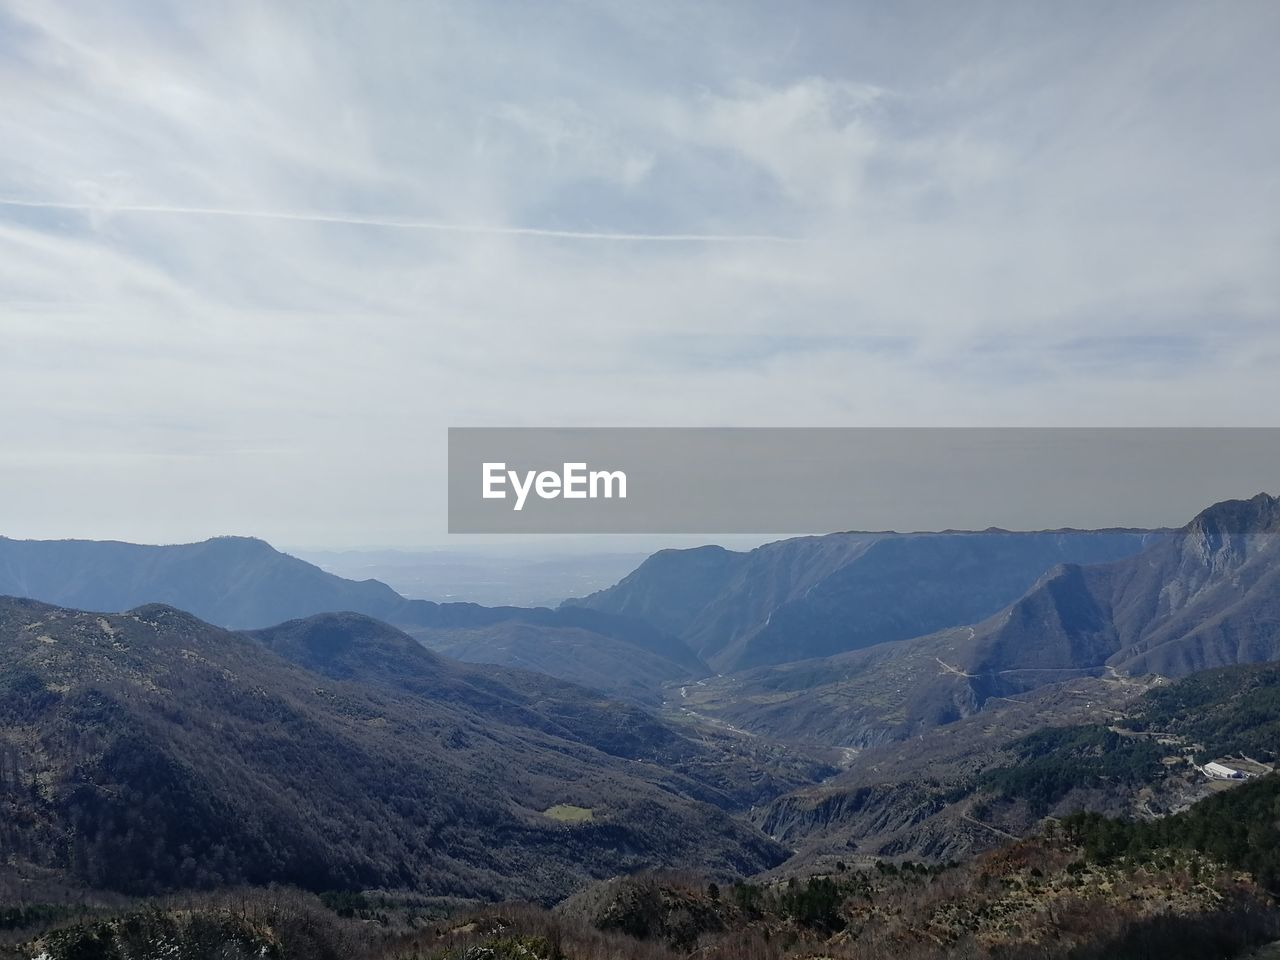 mountain, scenics - nature, beauty in nature, tranquil scene, mountain range, sky, landscape, tranquility, environment, non-urban scene, cloud - sky, no people, nature, day, idyllic, remote, outdoors, plant, valley, travel, mountain peak